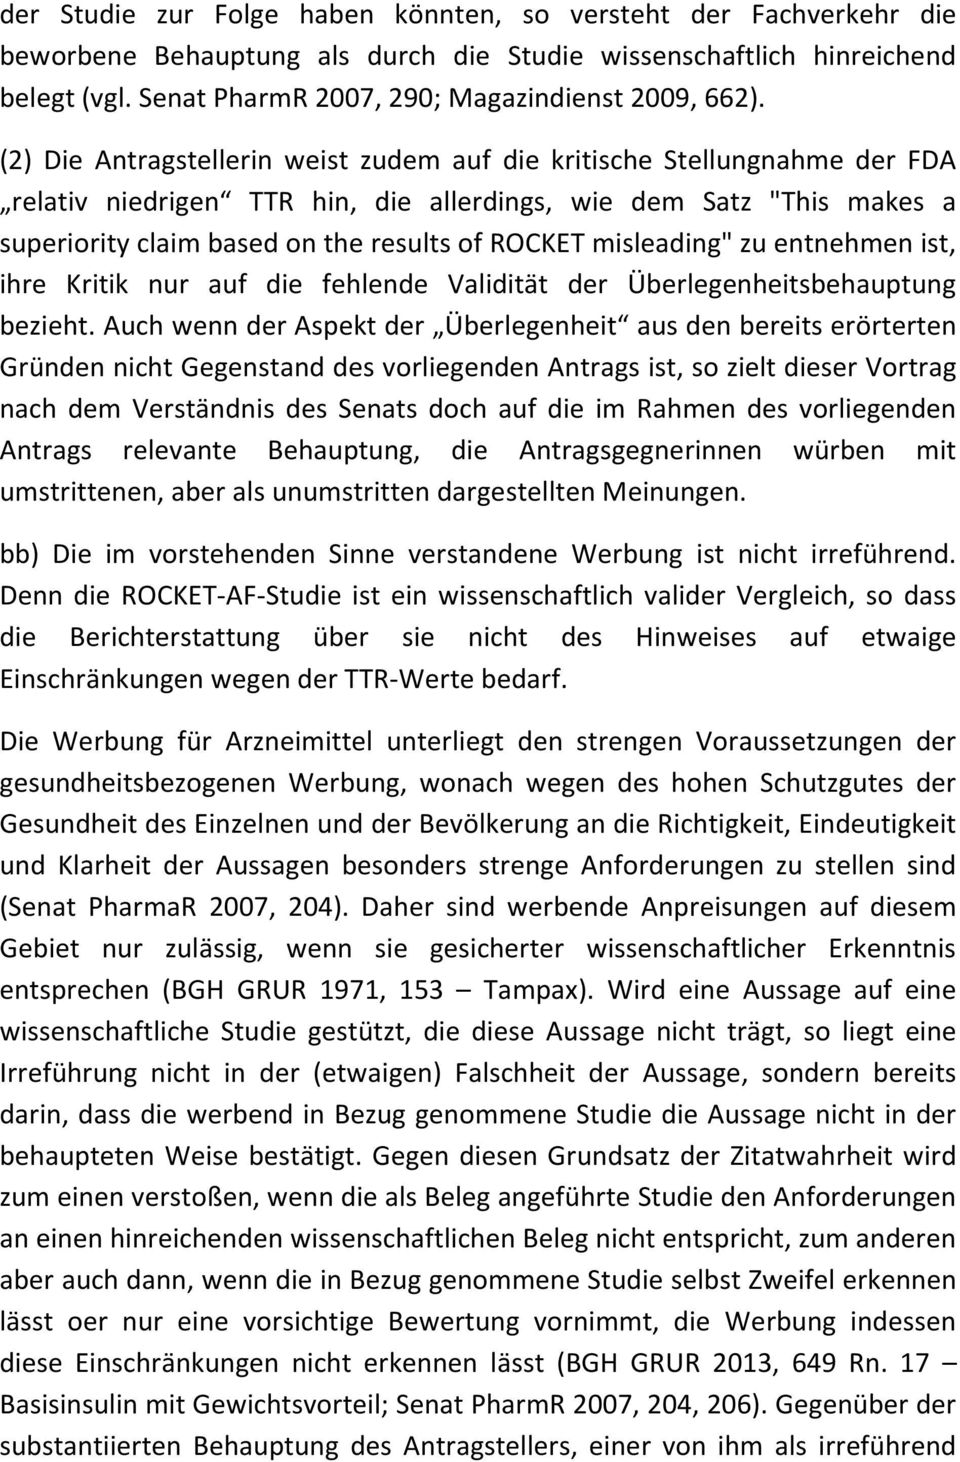 "(2) Die Antragstellerin weist zudem auf die kritische Stellungnahme der FDA relativ niedrigen TTR hin, die allerdings, wie dem Satz ""This makes a superiority claim based on the results of ROCKET"